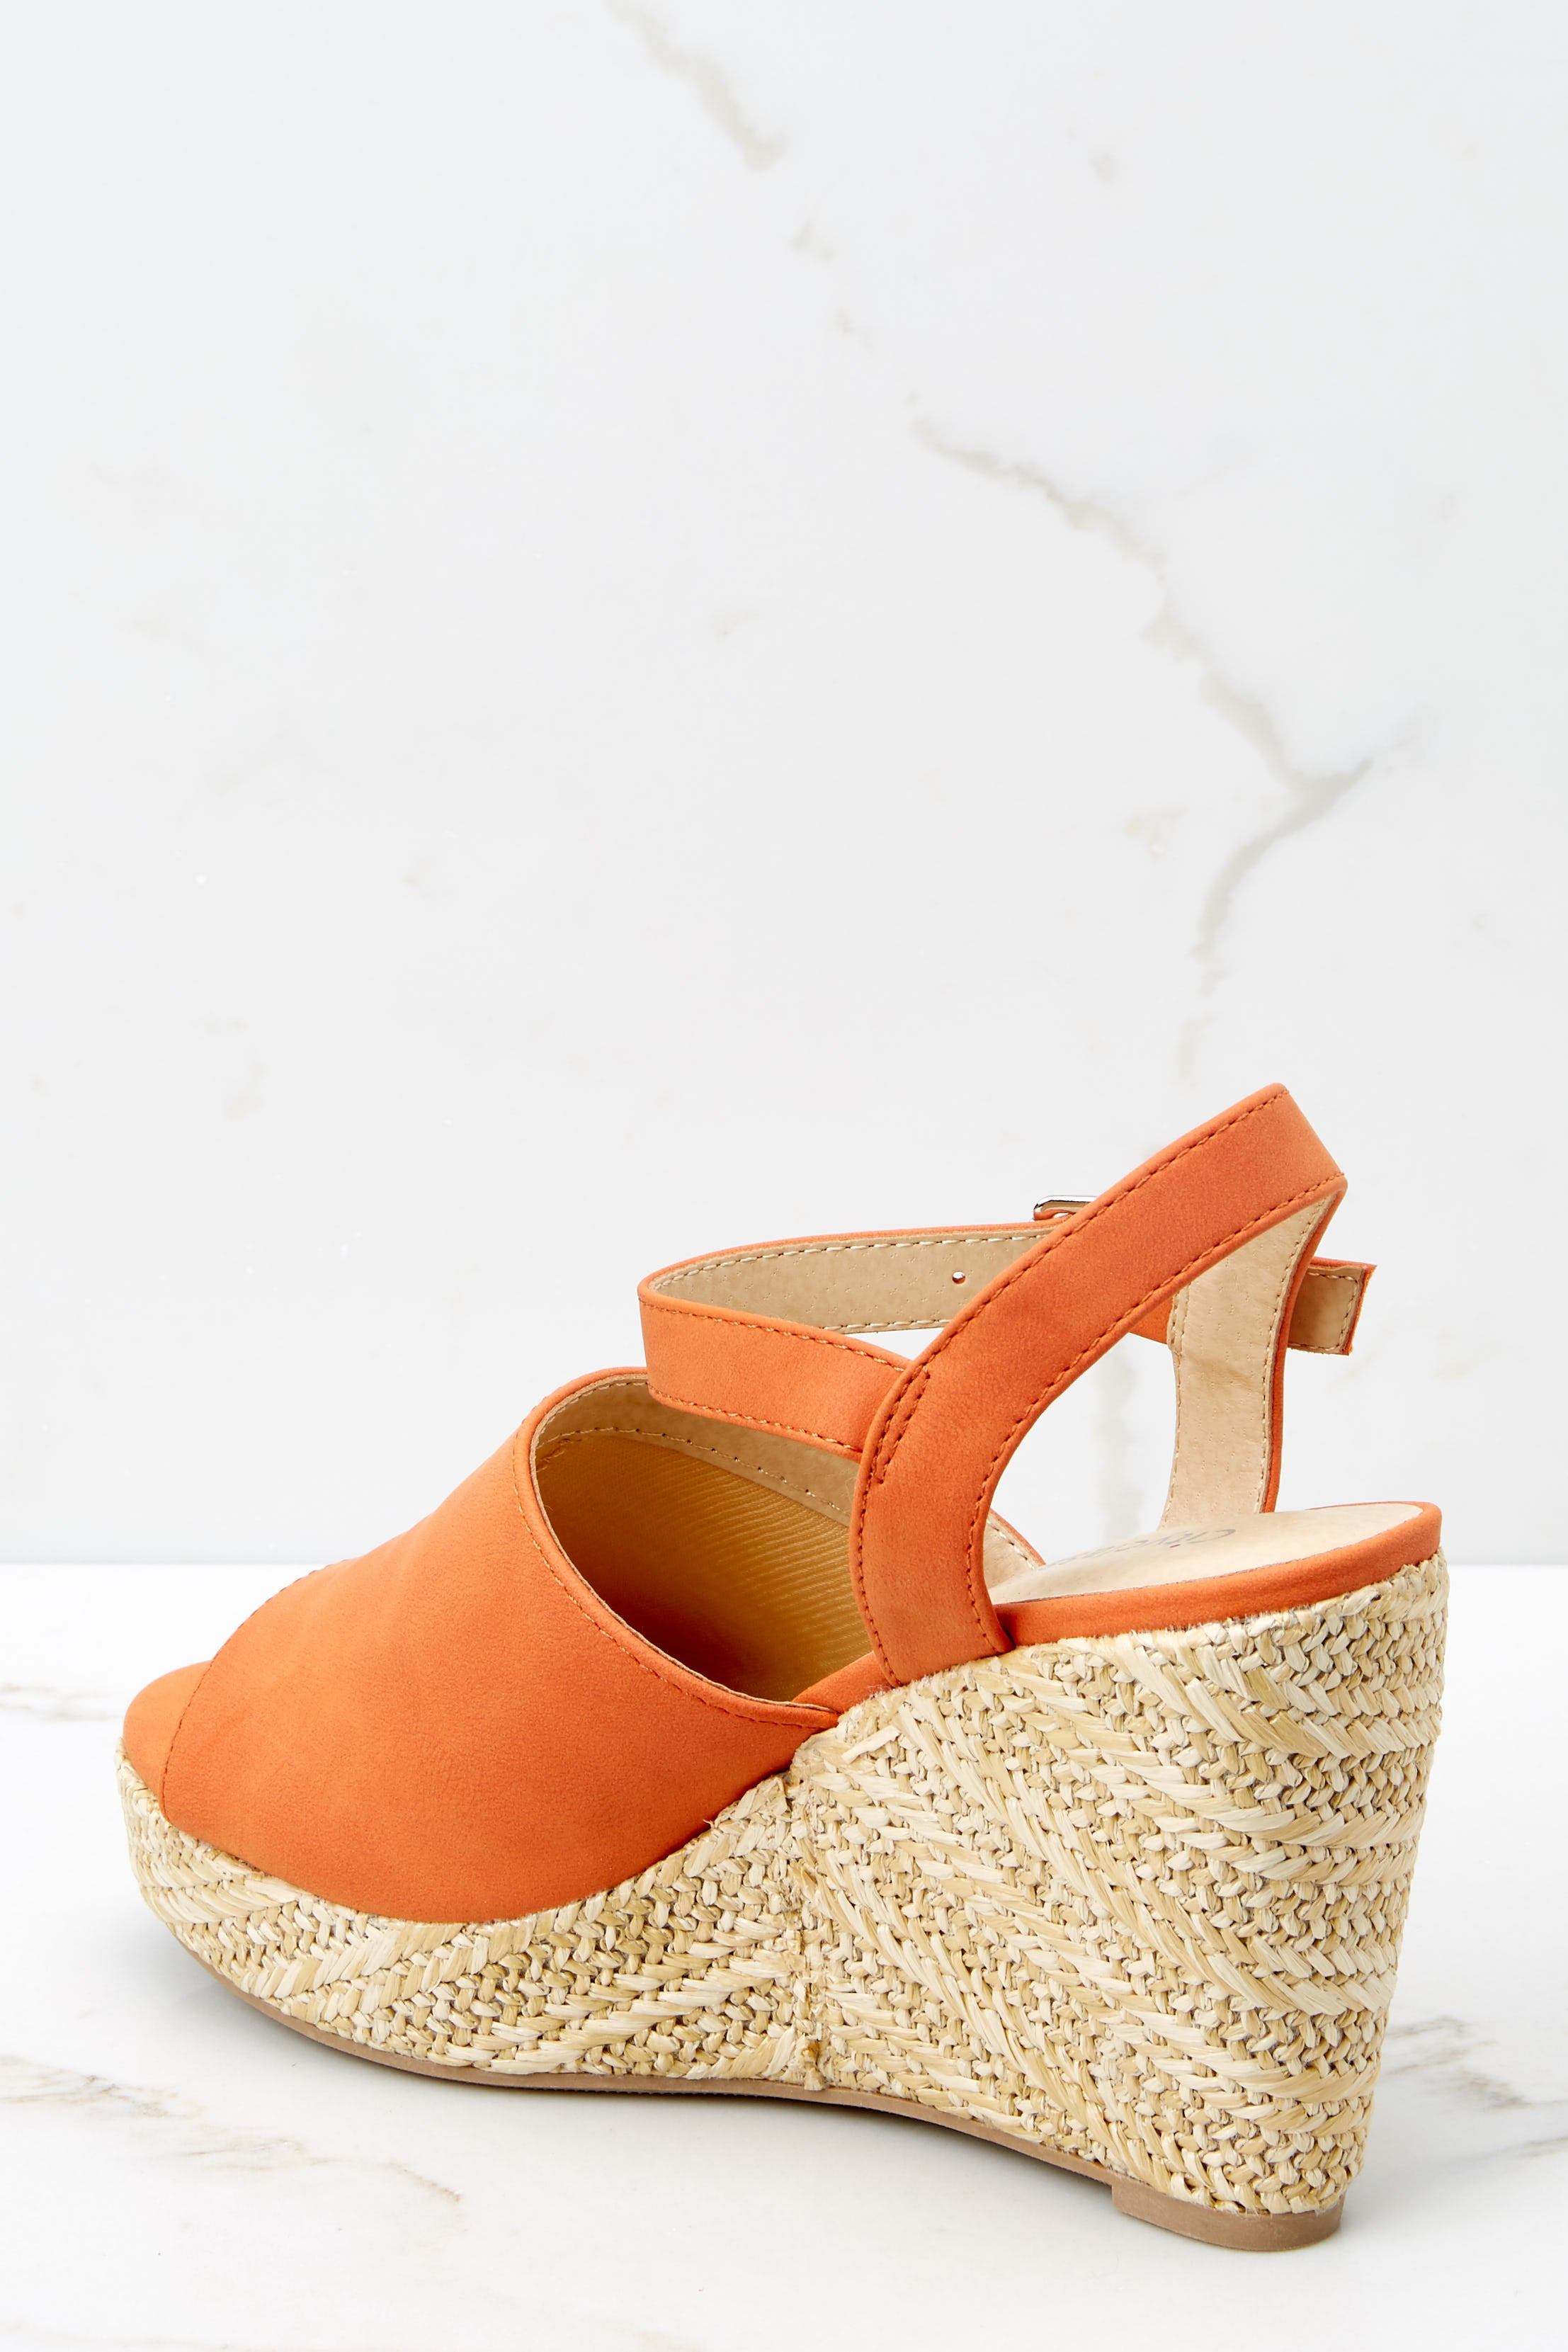 3 Walking On Sunshine Coral Orange Platform Wedges at reddress.com